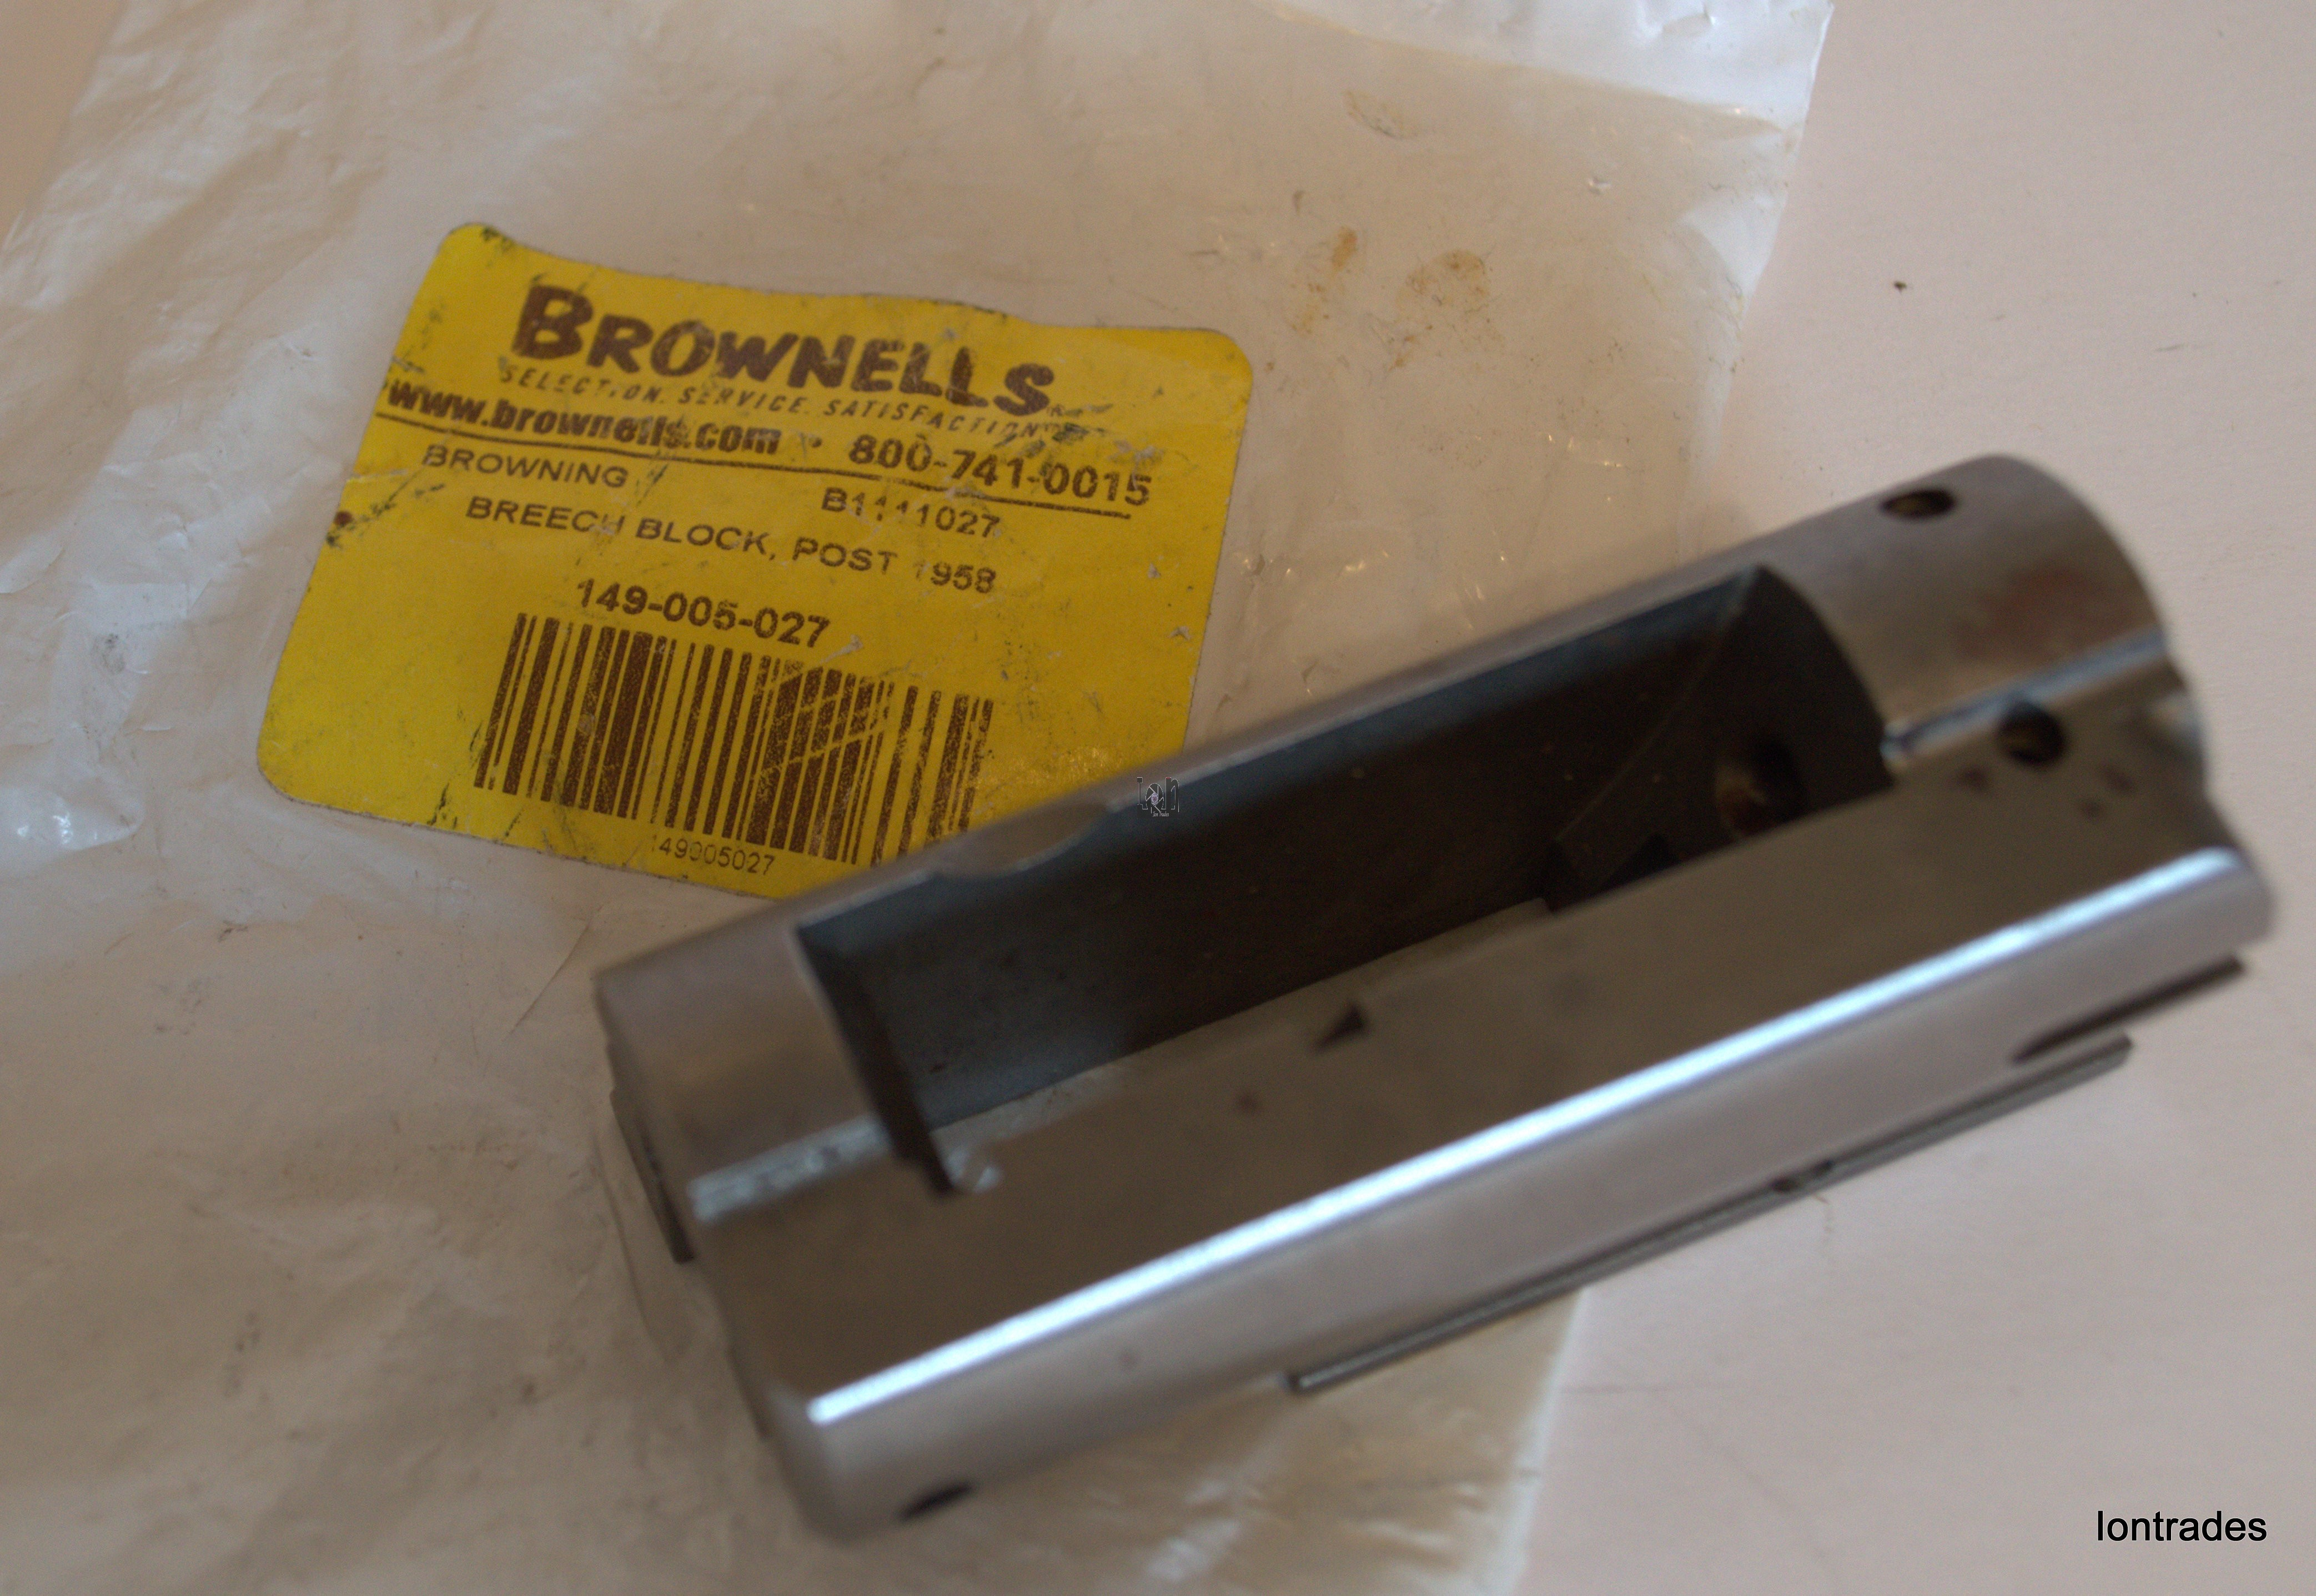 Browning A5 Breech Block Post 1958 Auto 5 Brownells